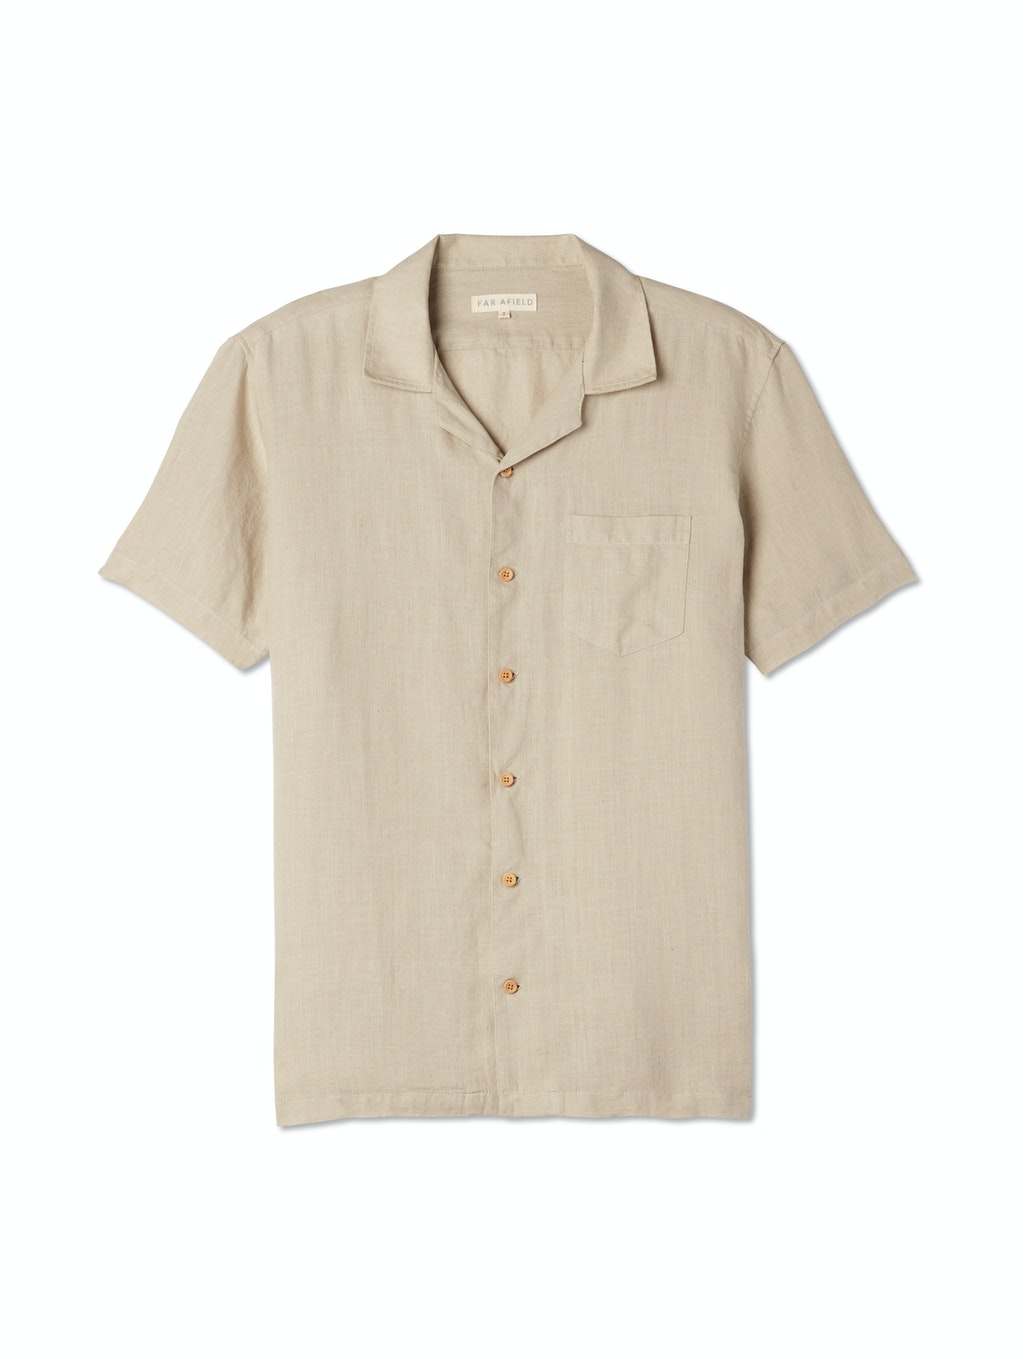 Stachio Short Sleeve Shirt